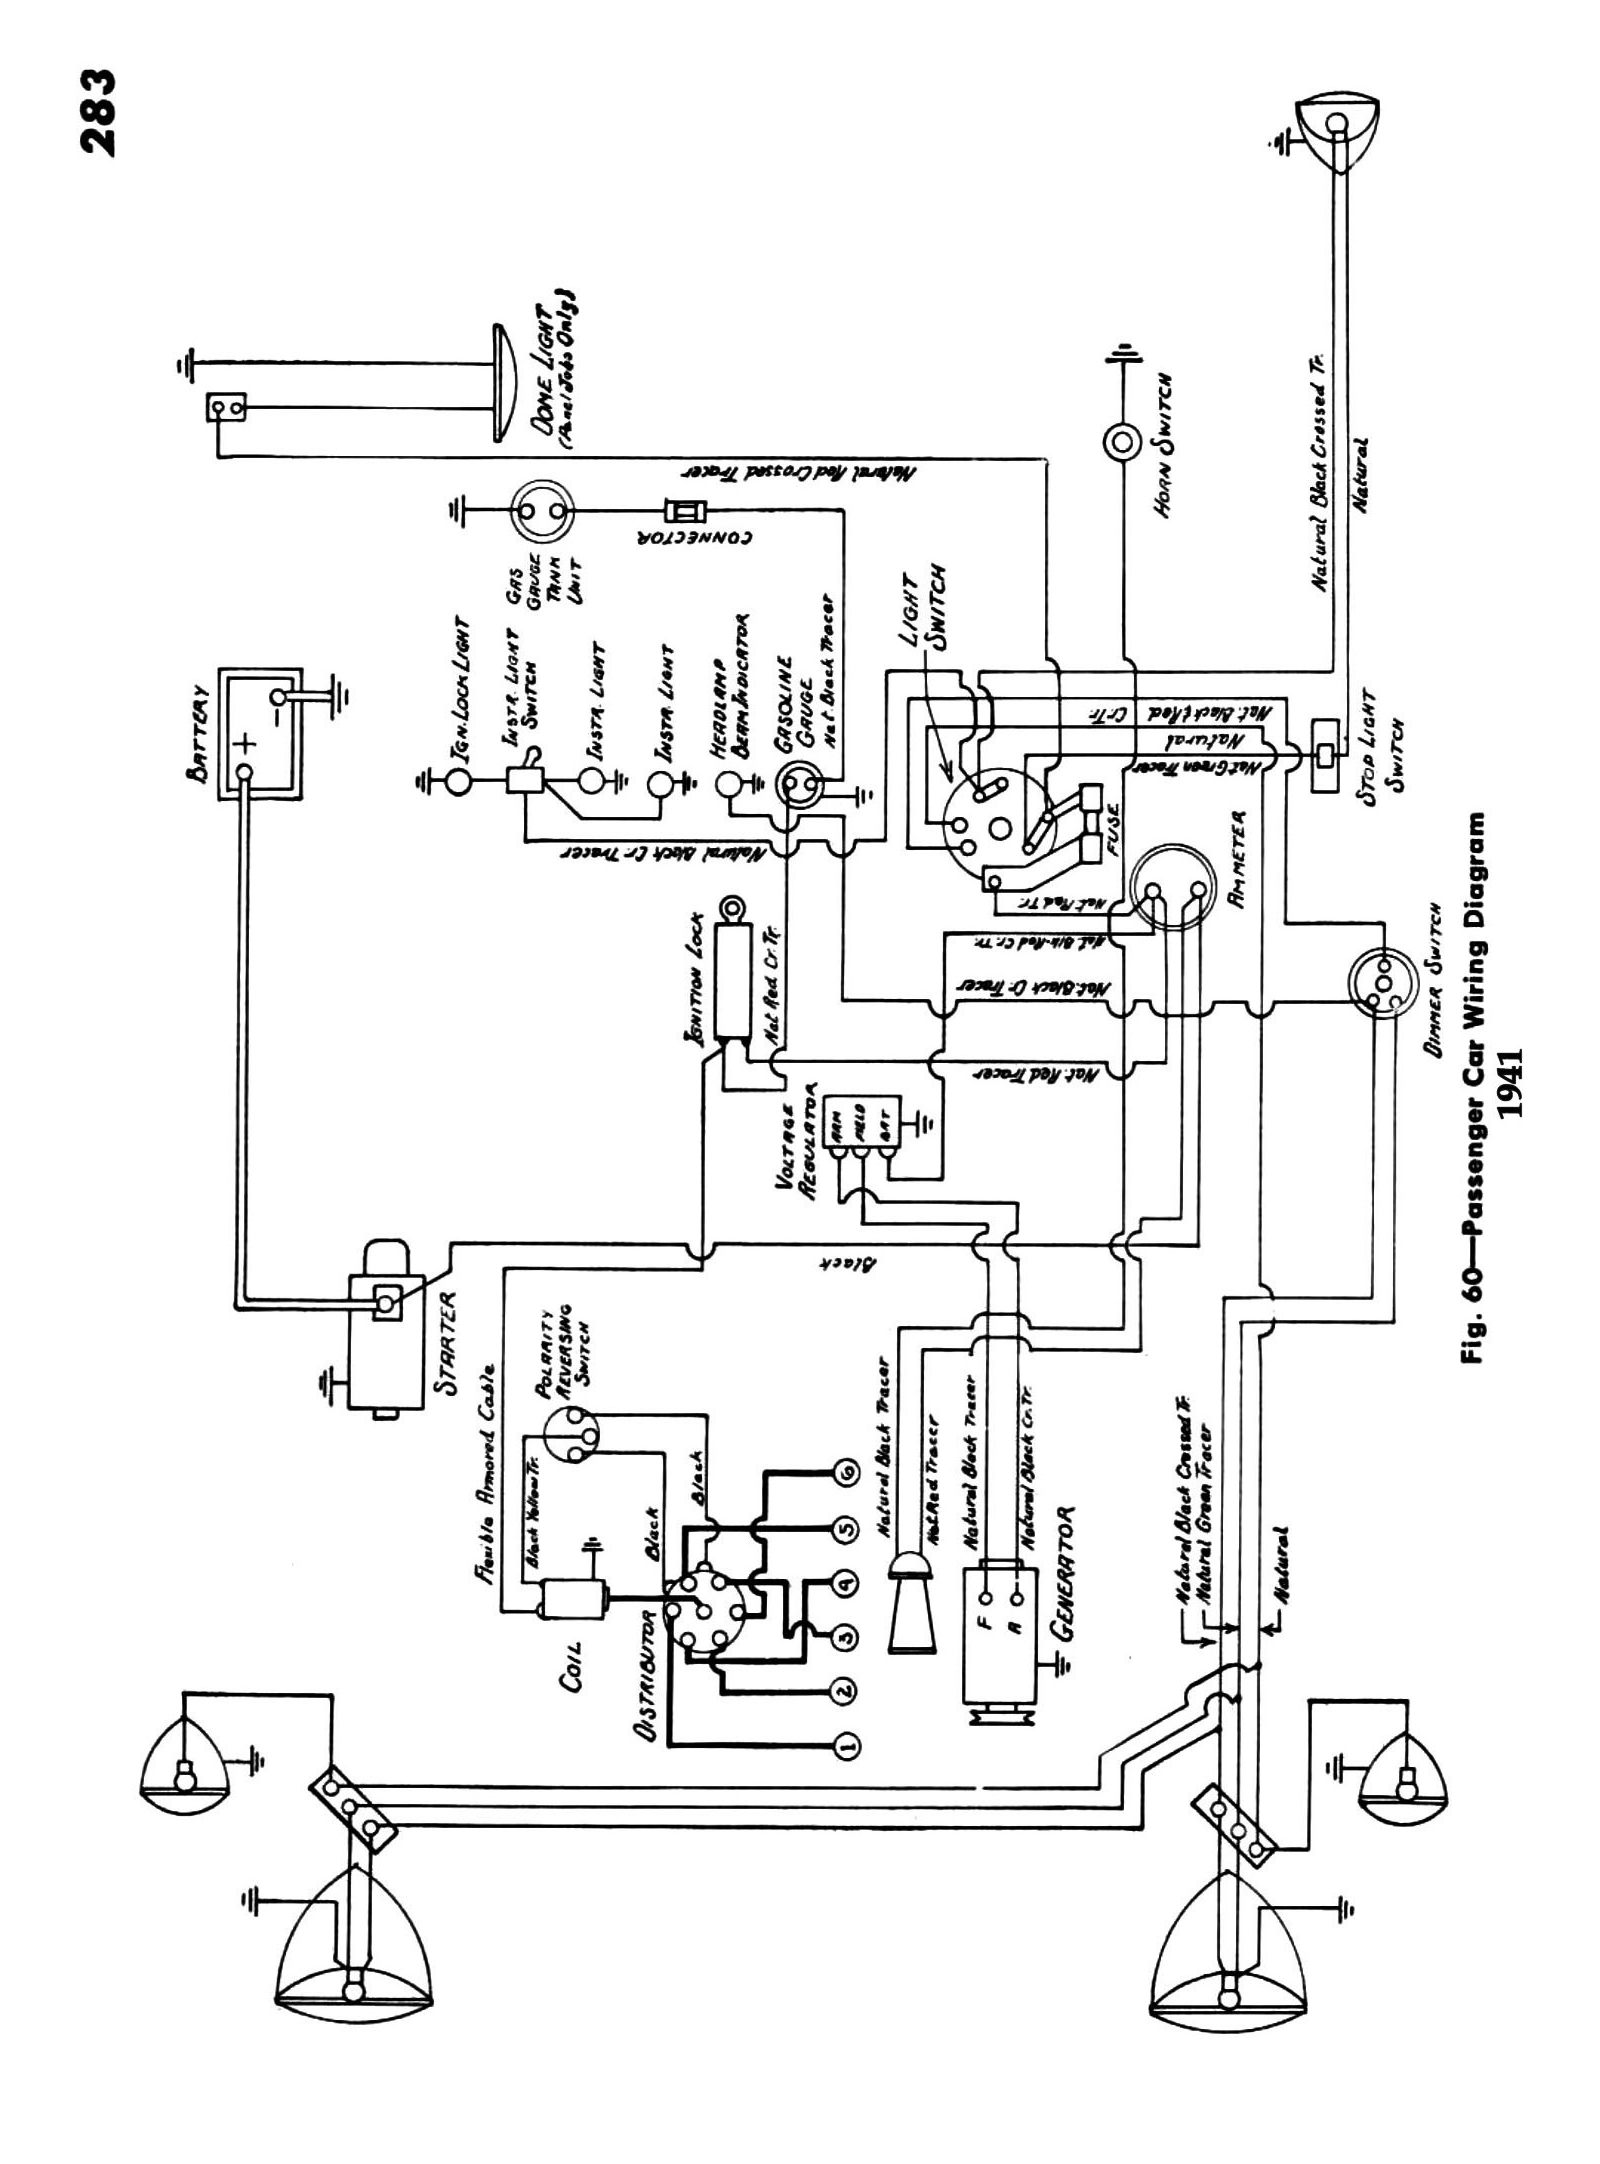 1947 Chevy Truck Wiring Diagram Opinions About Wiring Diagram \u2022 1950  Ford Wiring Diagram 1947 Chevy Wiring Diagram